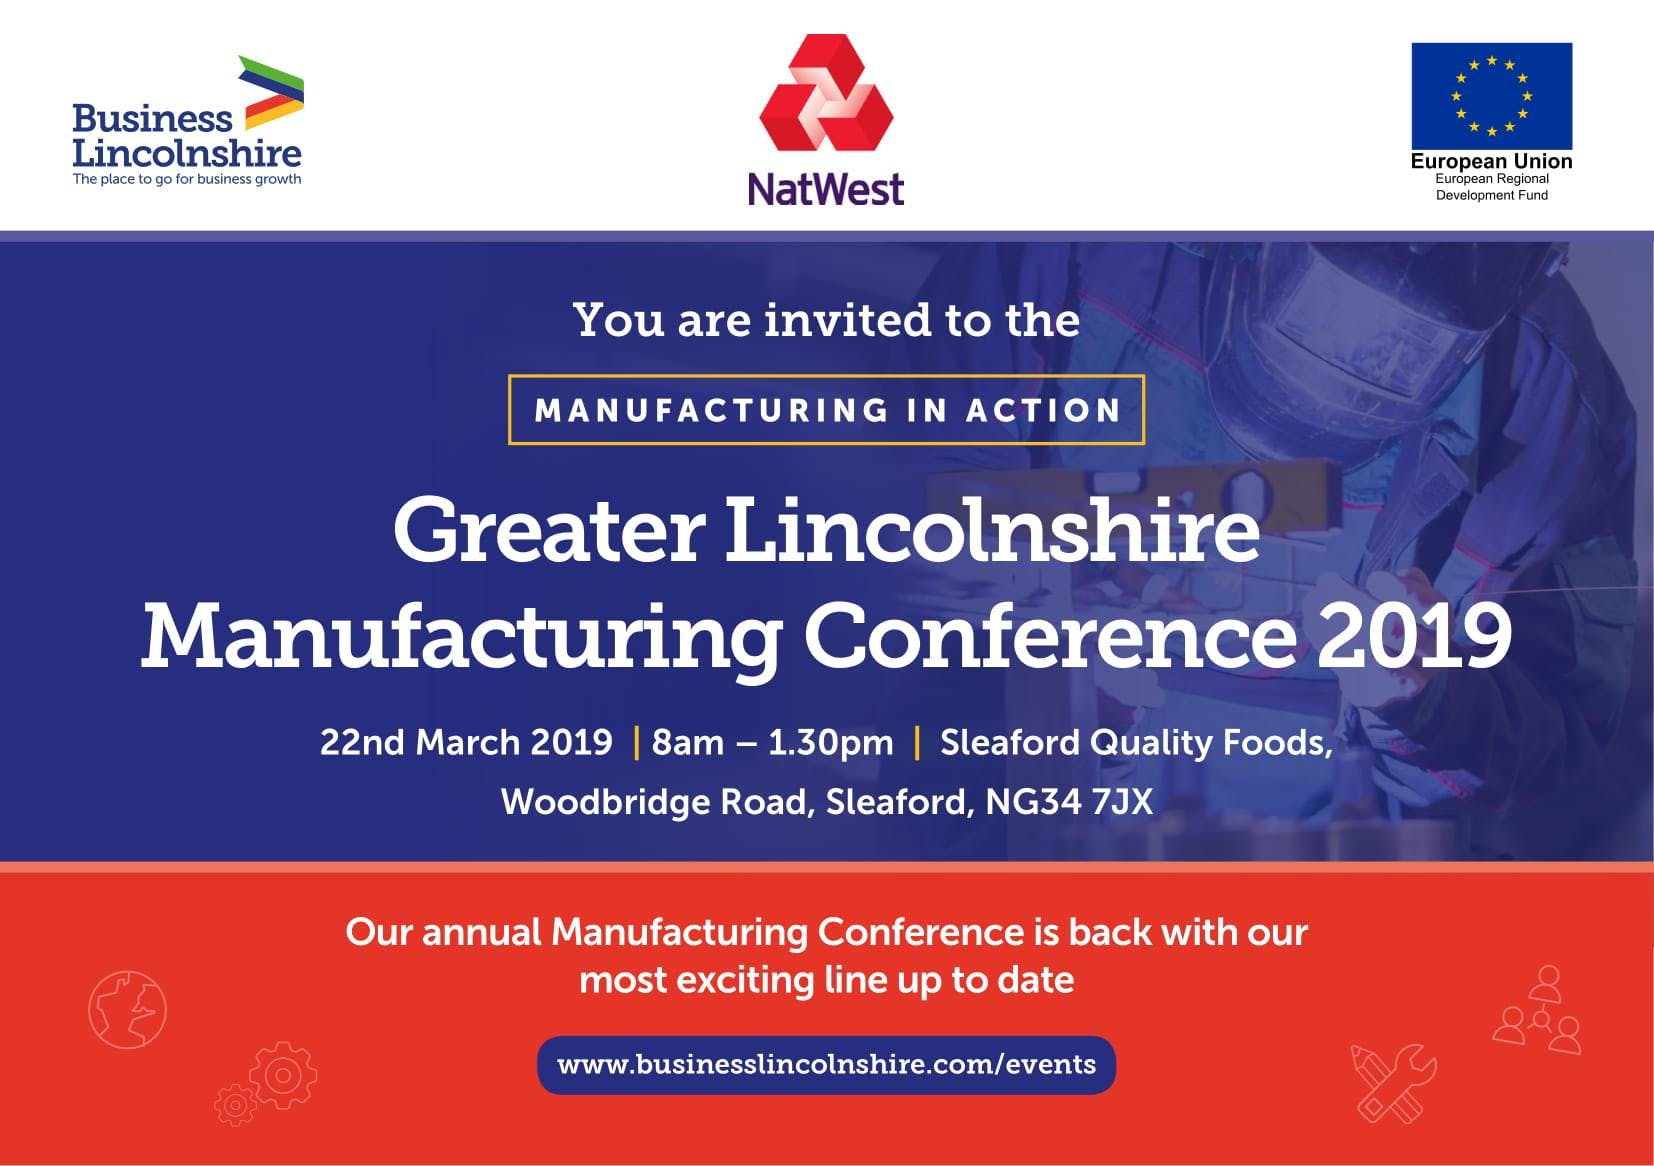 Greater Lincolnshire Manufacturing Conference